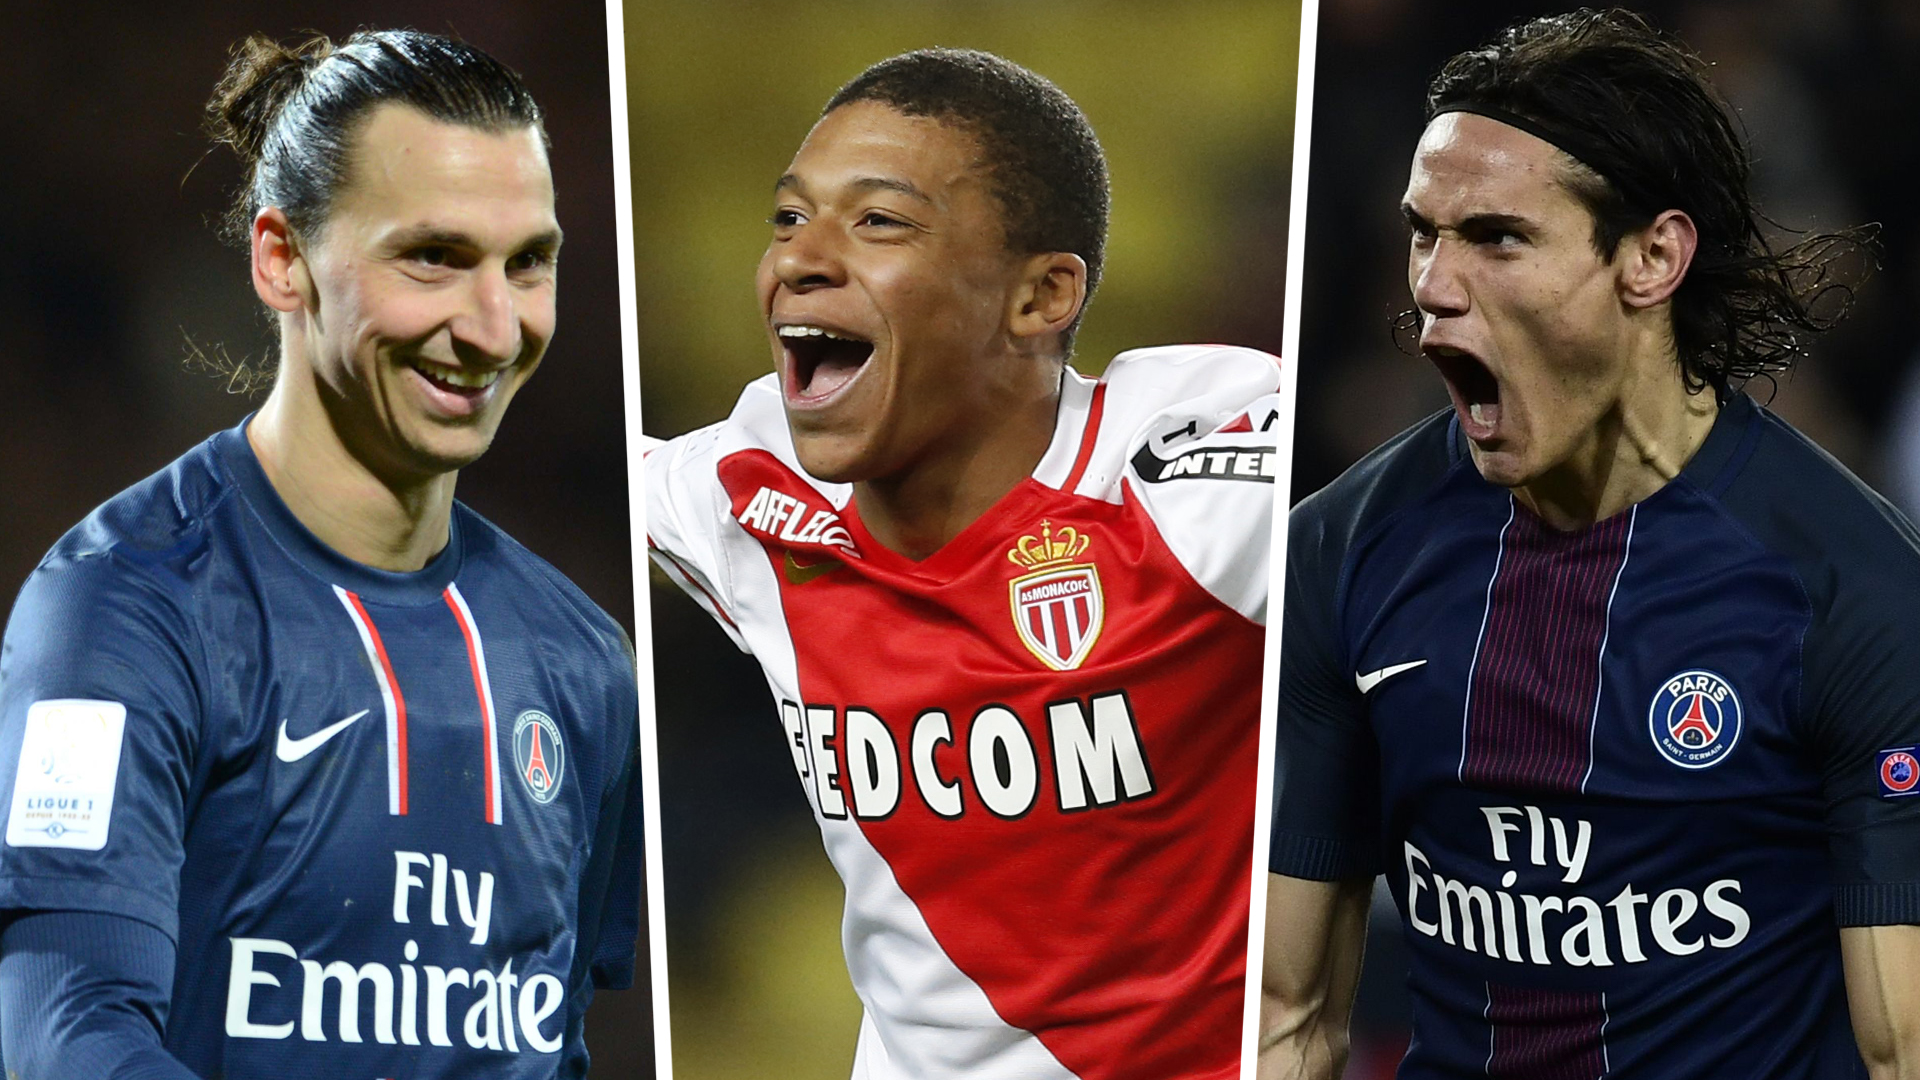 Ligue 1 Team of the Decade: Ibrahimovic Mbappe form dream attack